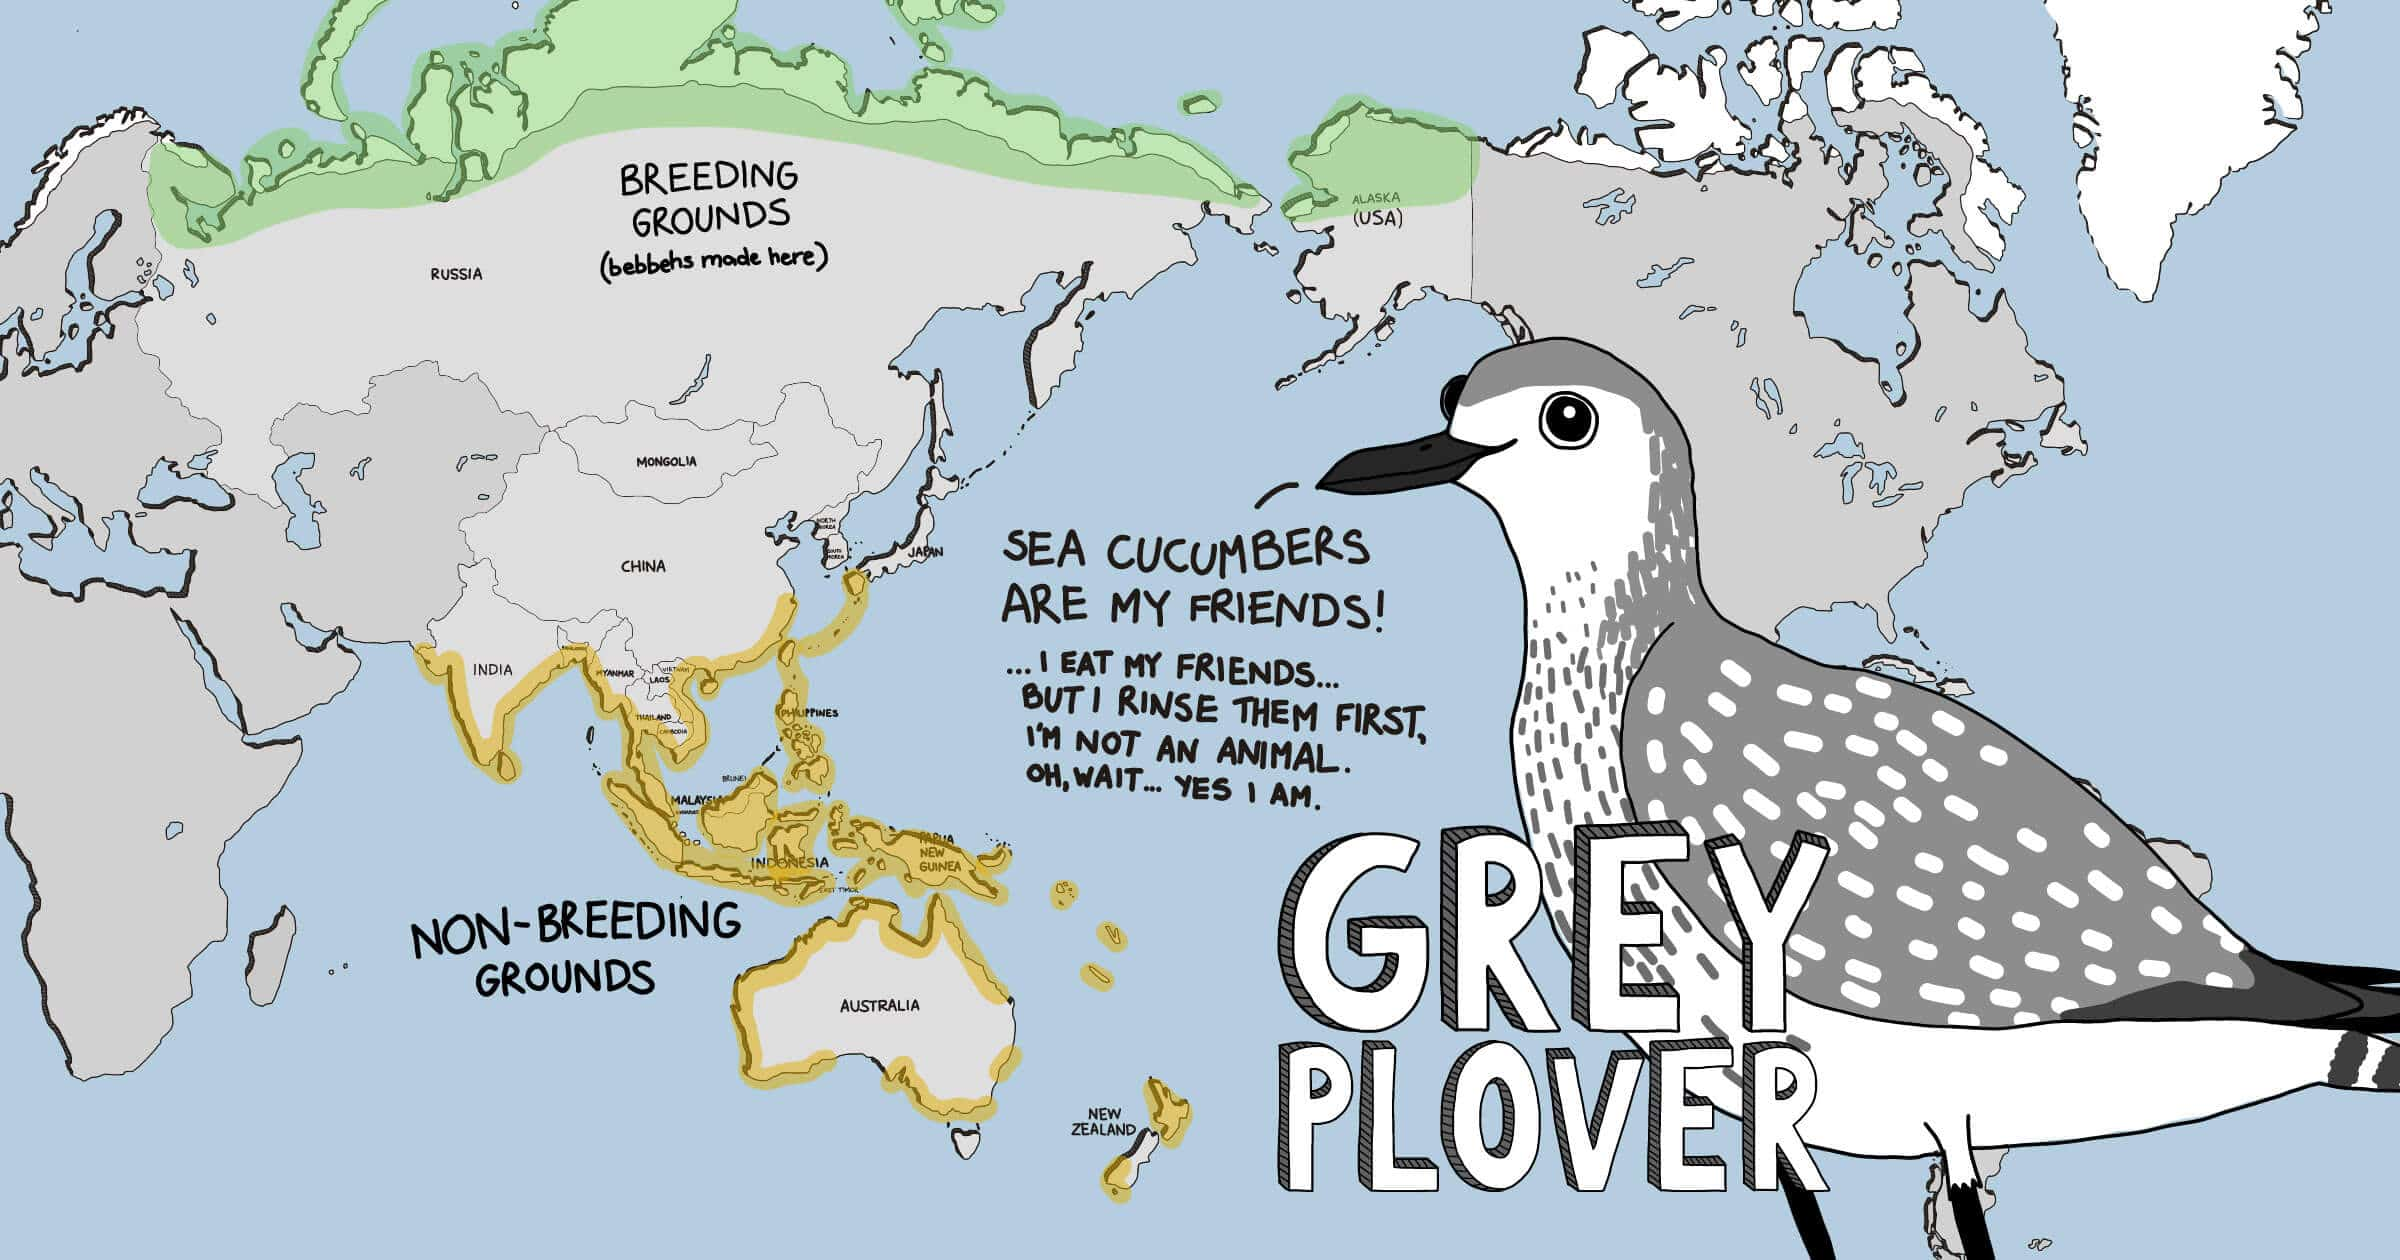 Meet The Shorbirds distribution map - Grey Plover